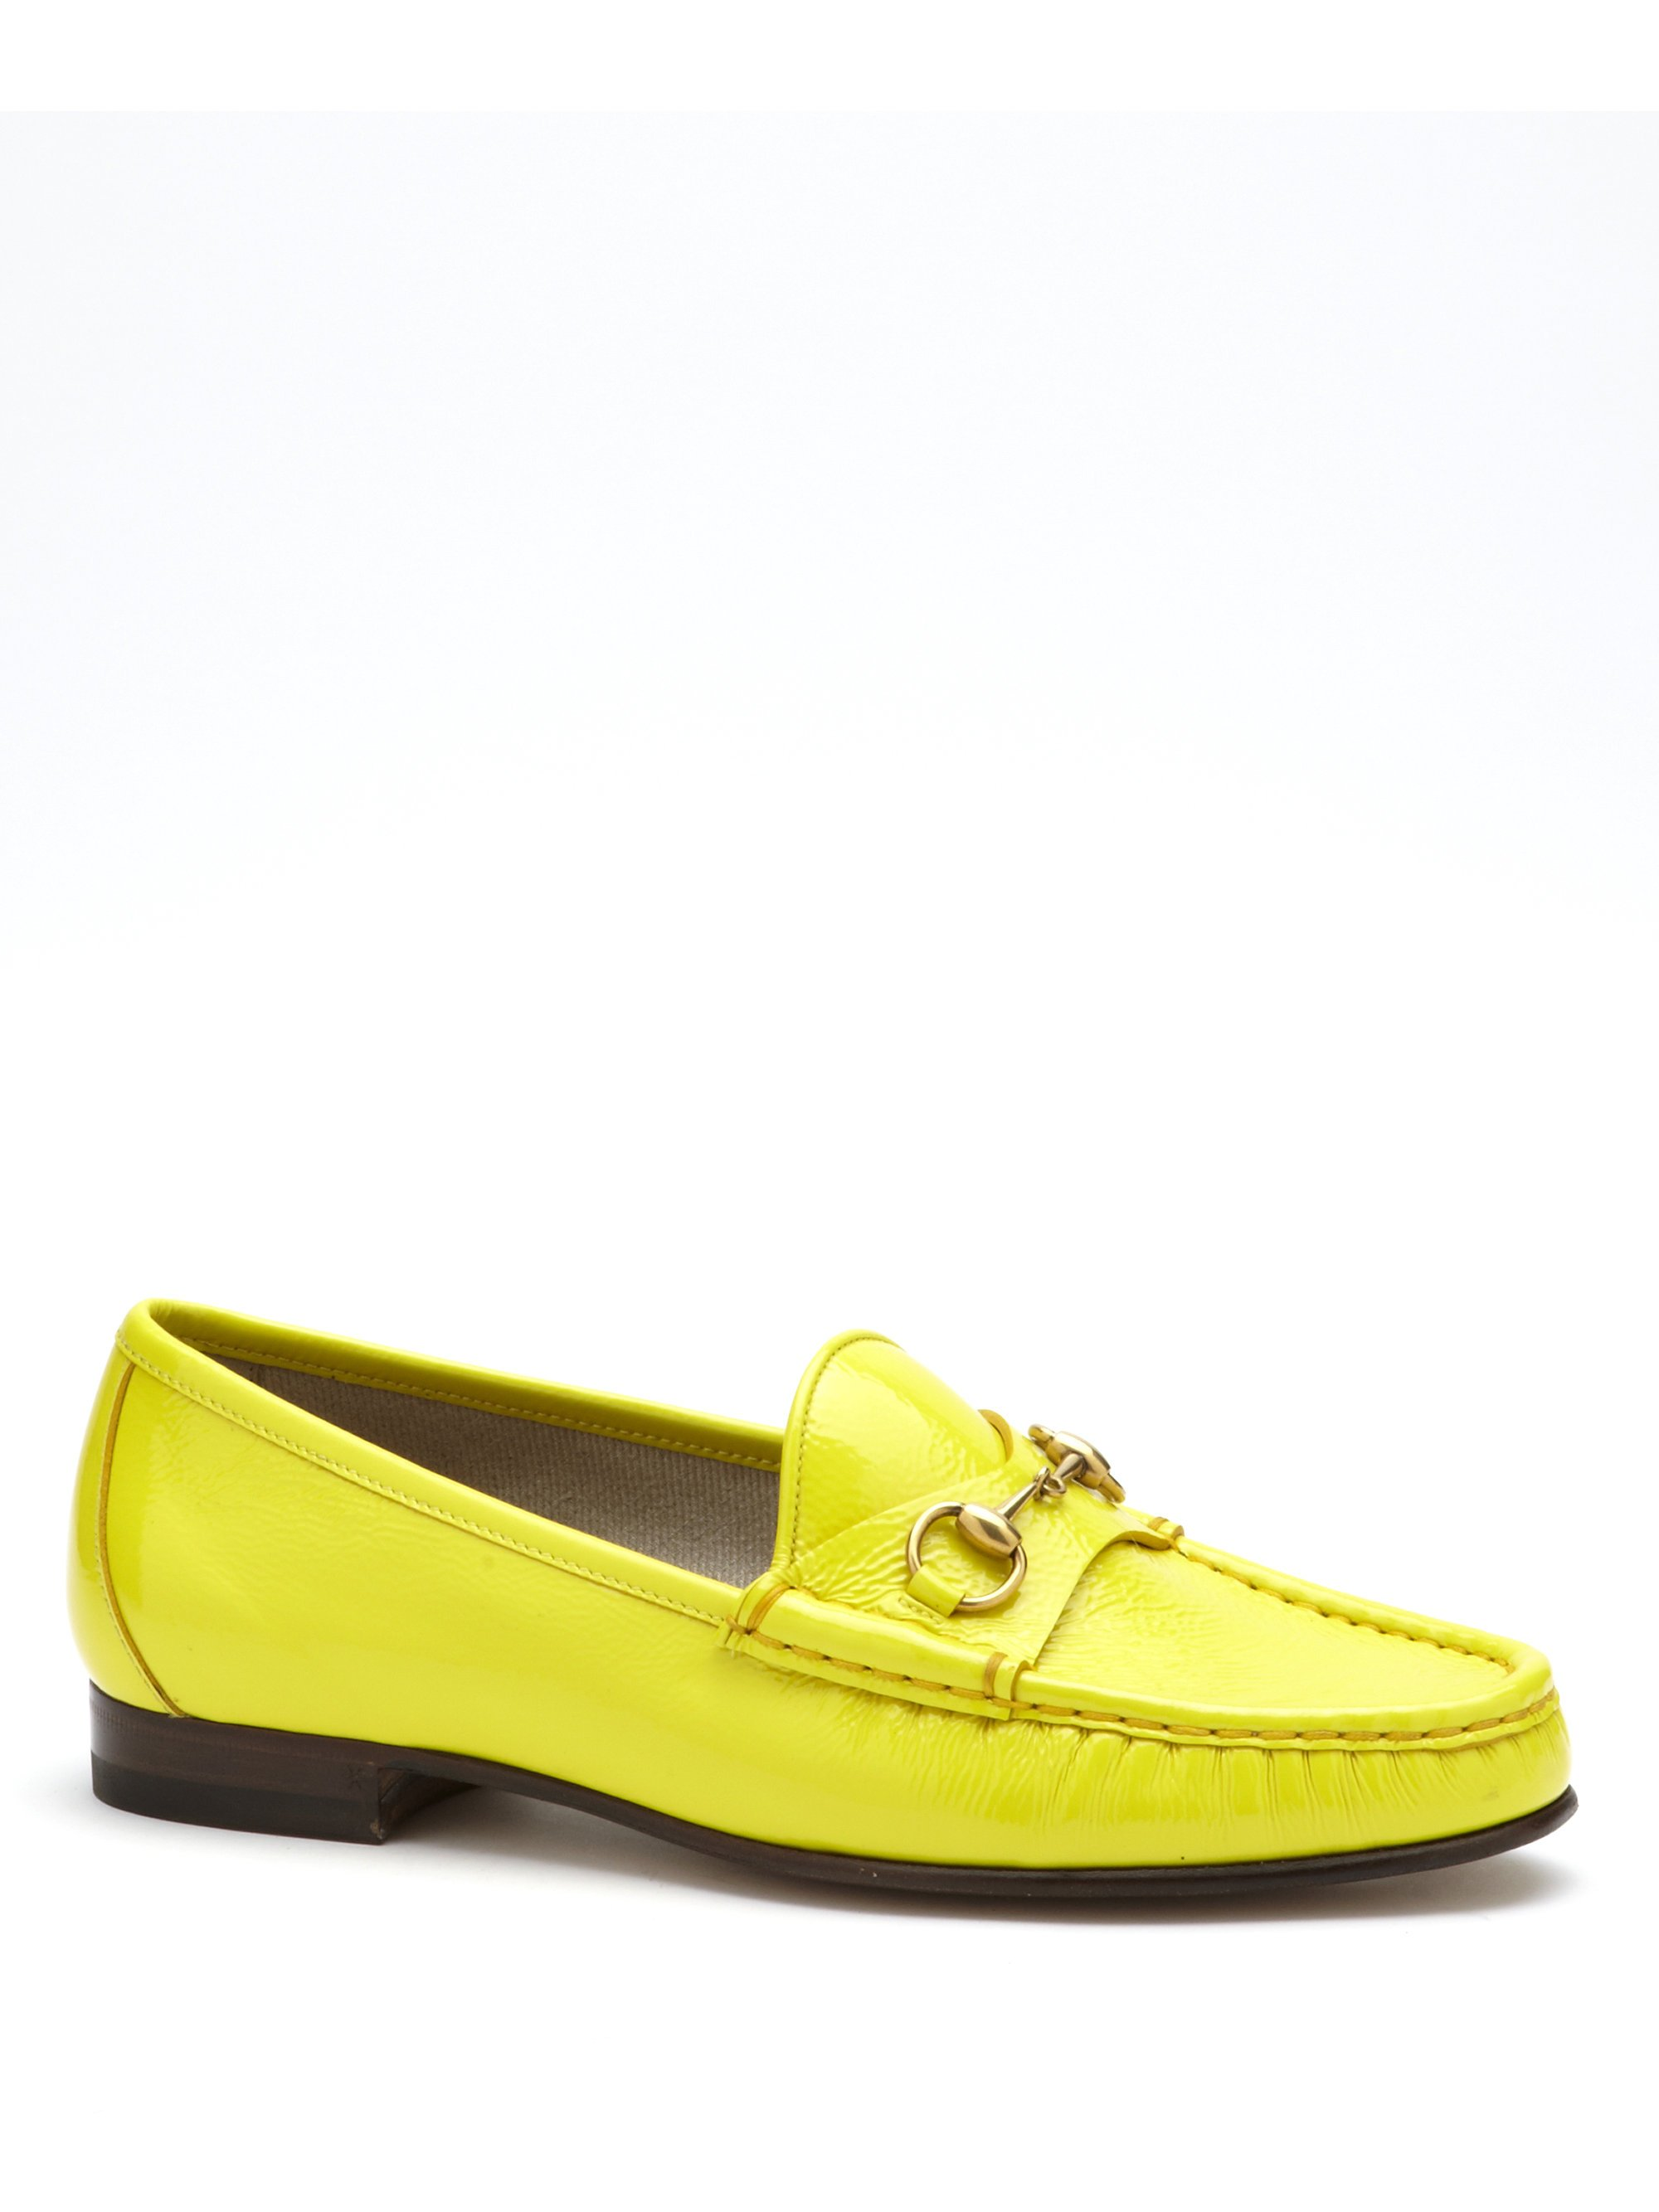 Gucci Patent Leather Horsebit Loafers